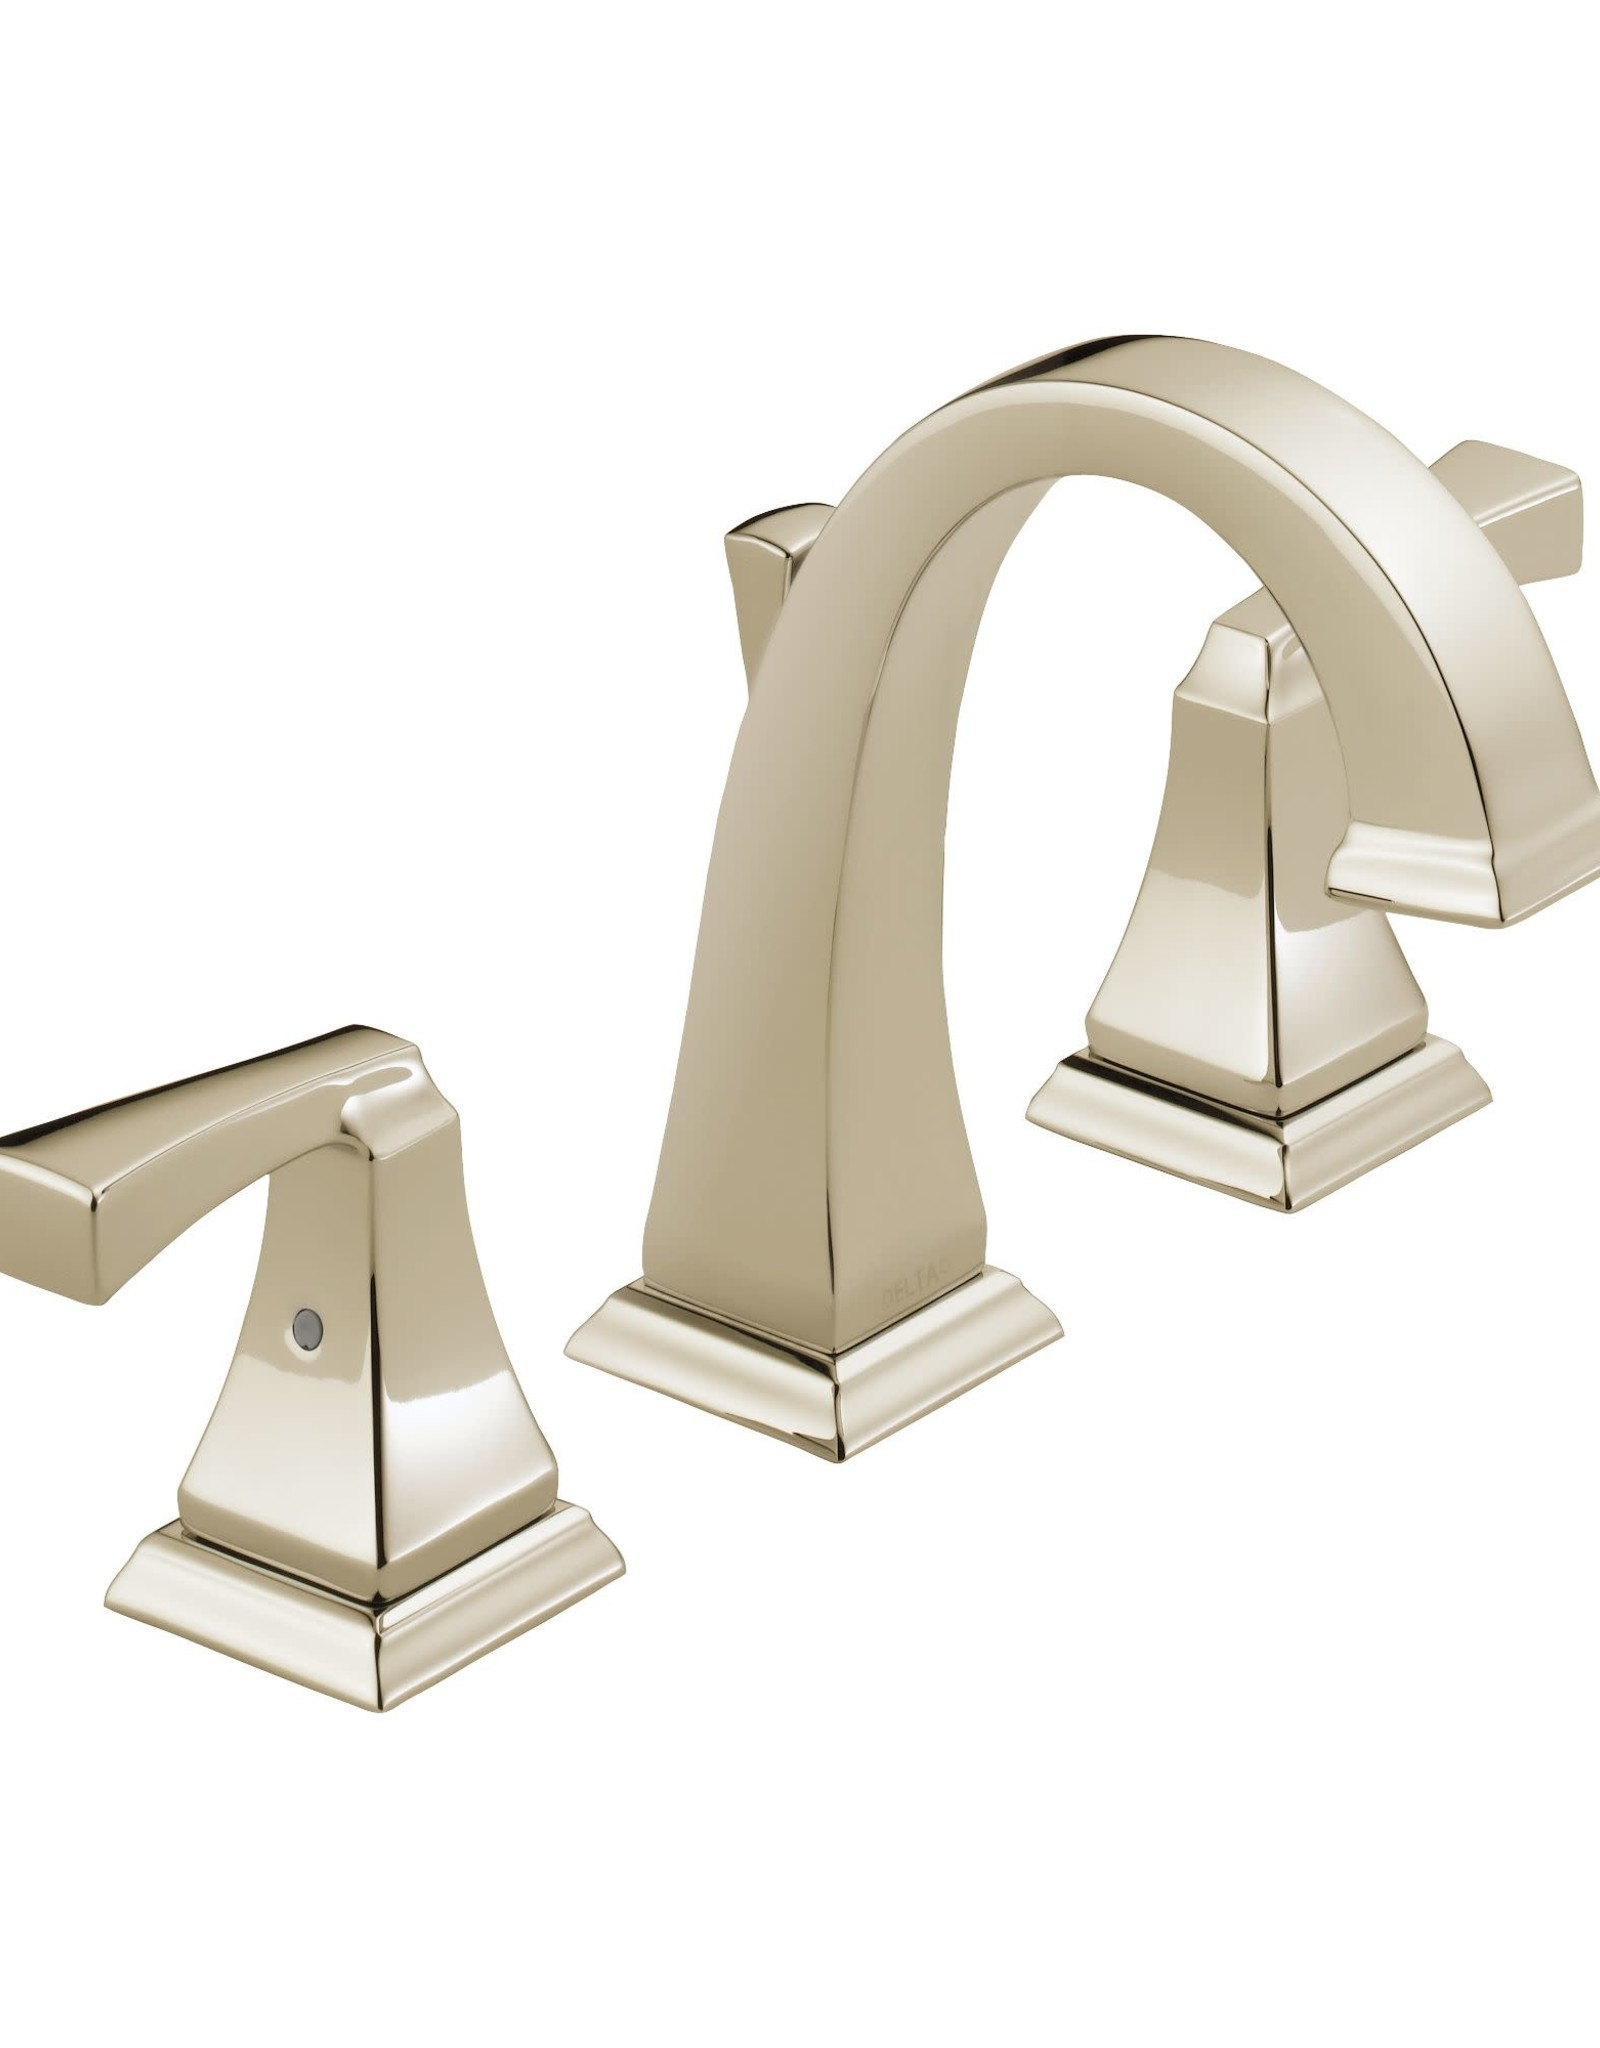 Delta DELTA DRYDEN - POLISHED NICKEL TWO HANDLE WIDESPREAD LAVATORY FAUCET